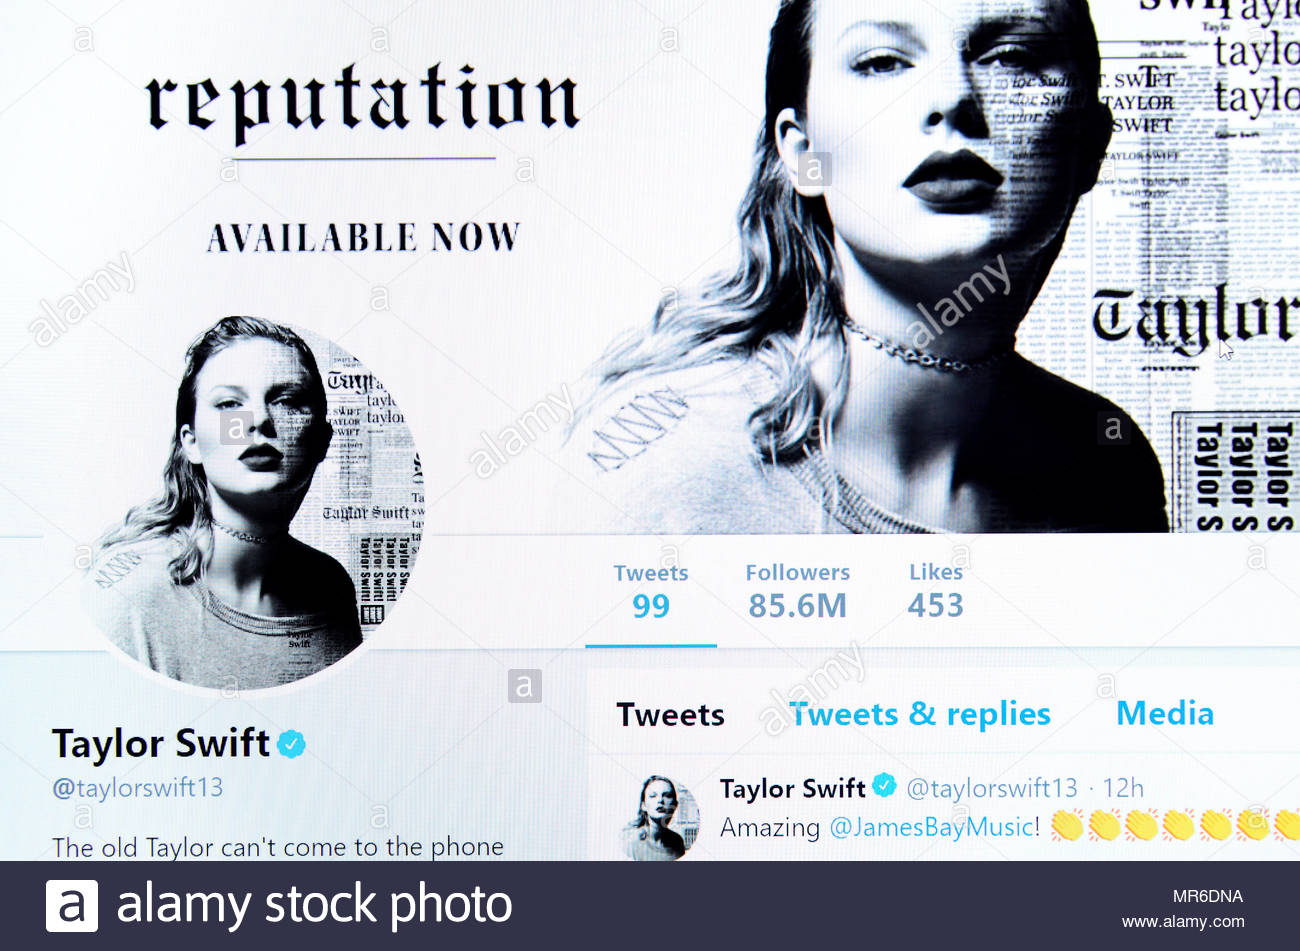 Taylor Swift Twitter page (2018) - Stock Image